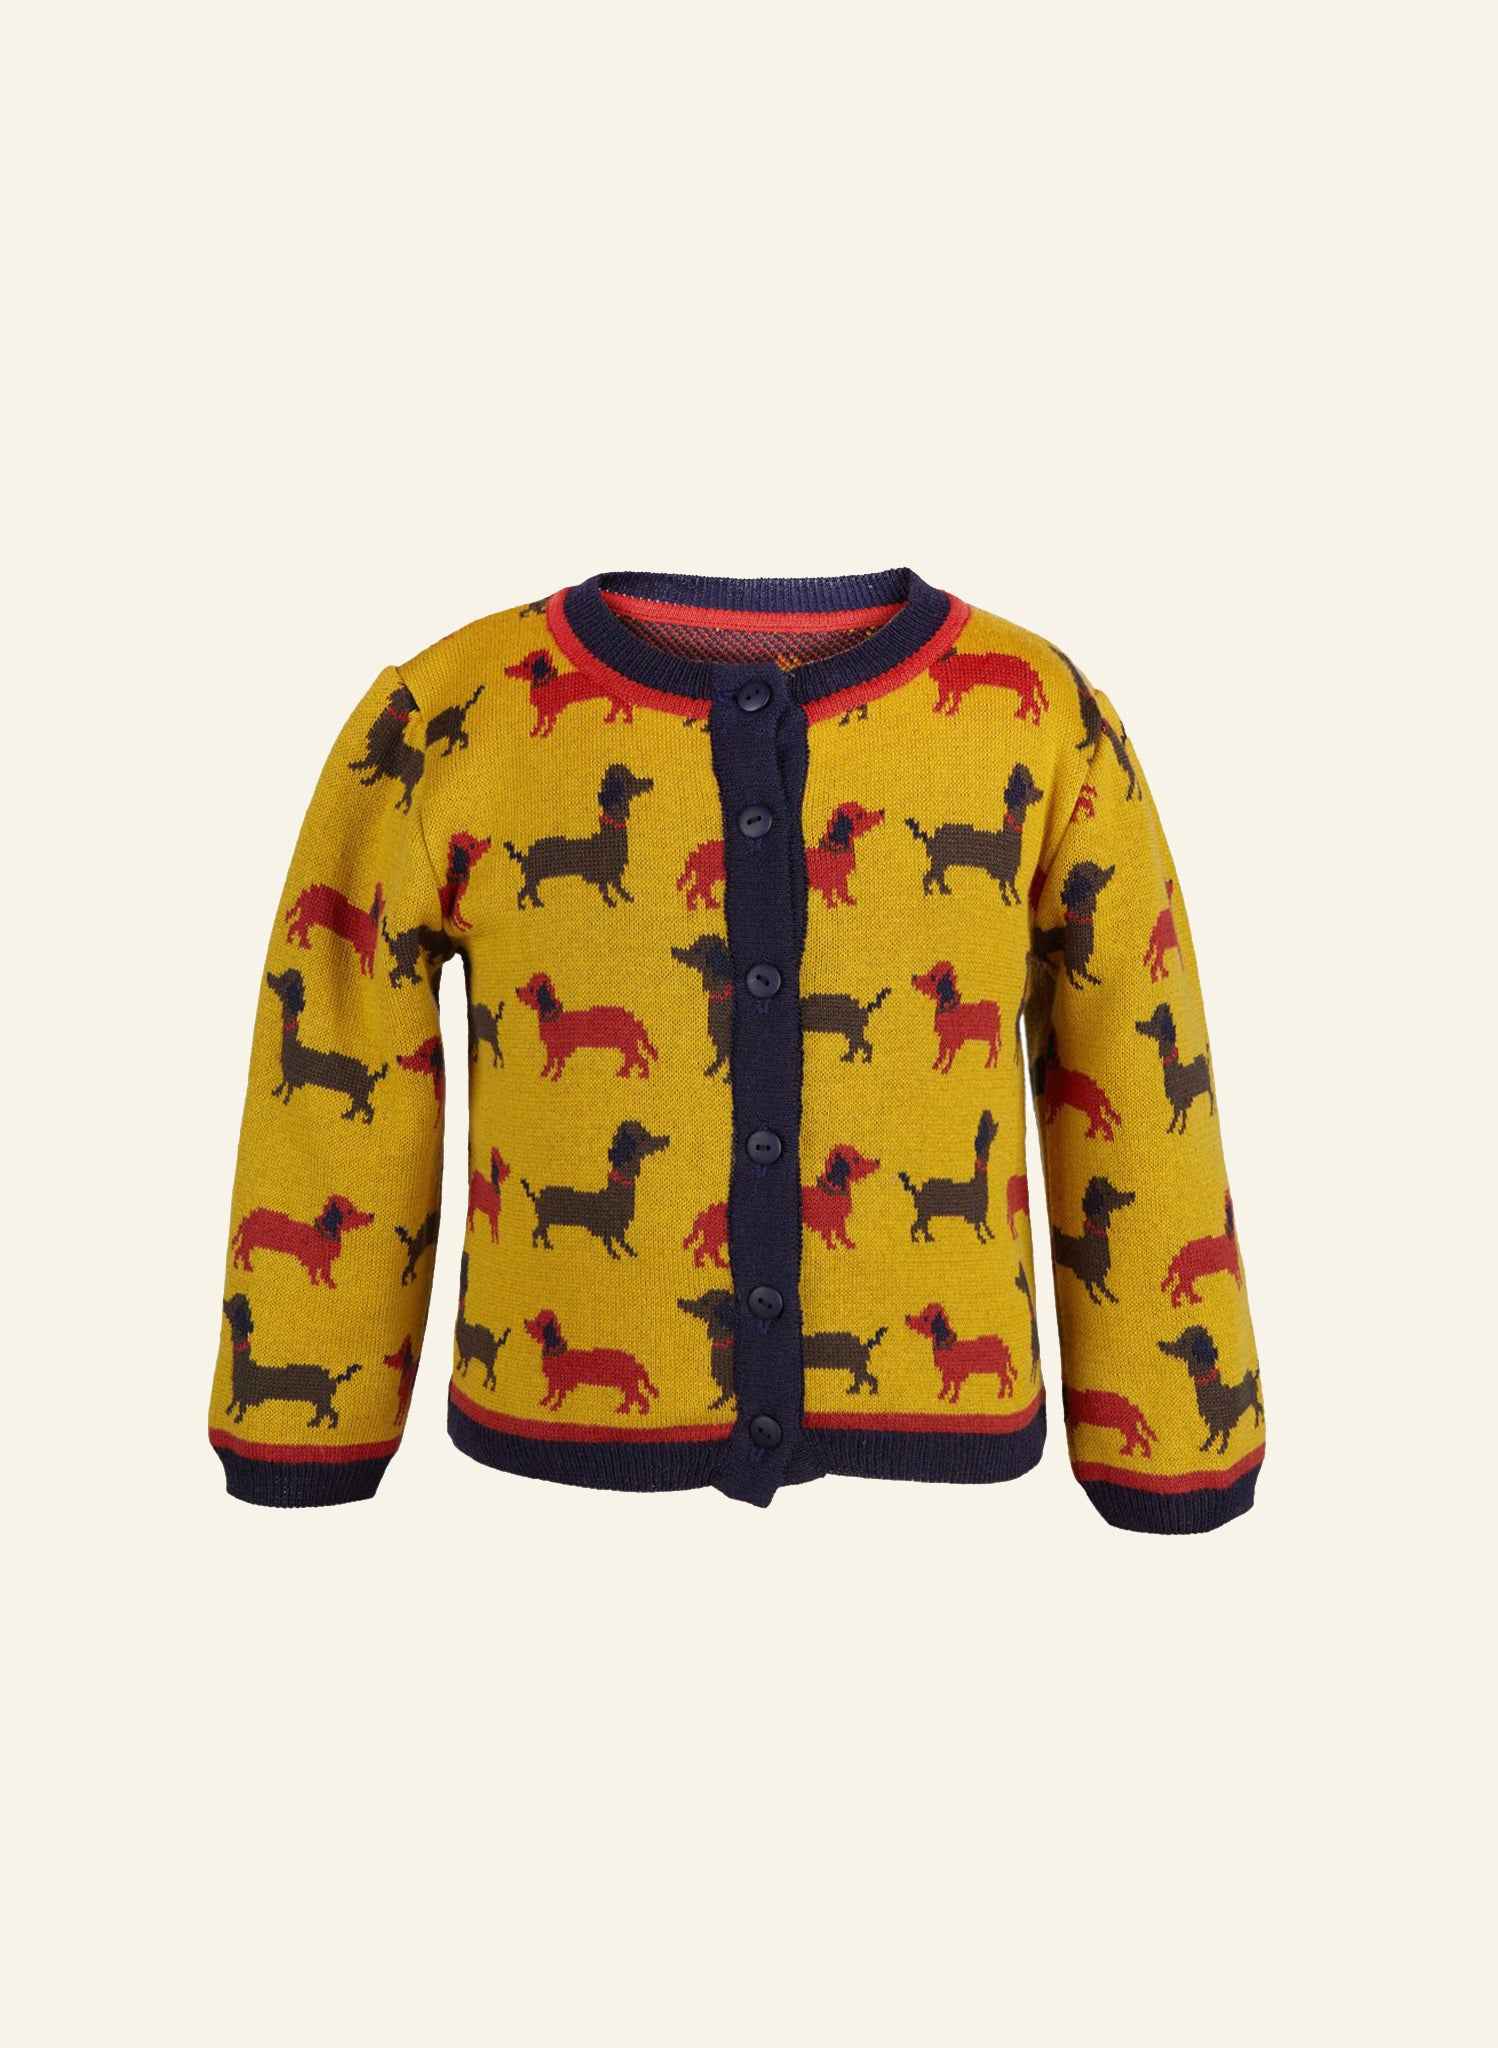 Children's Cardigan - Mustard Sausage Dog